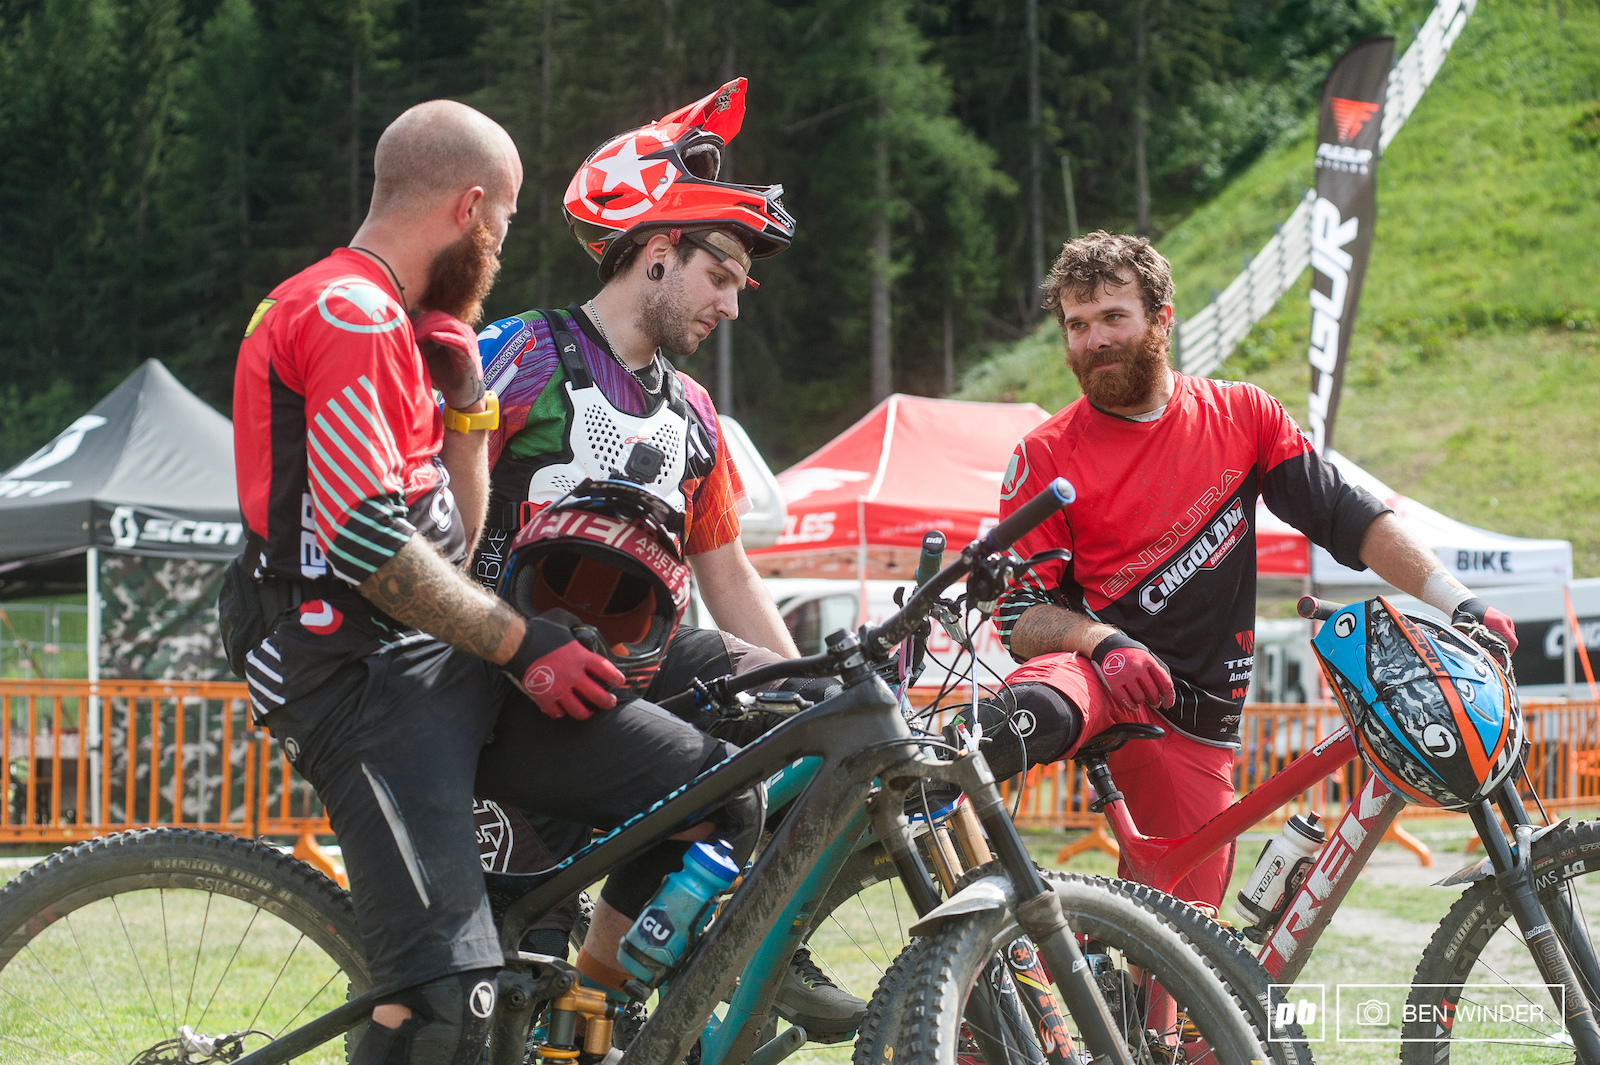 The Lupato brothers discussing the trails at the end of the day.